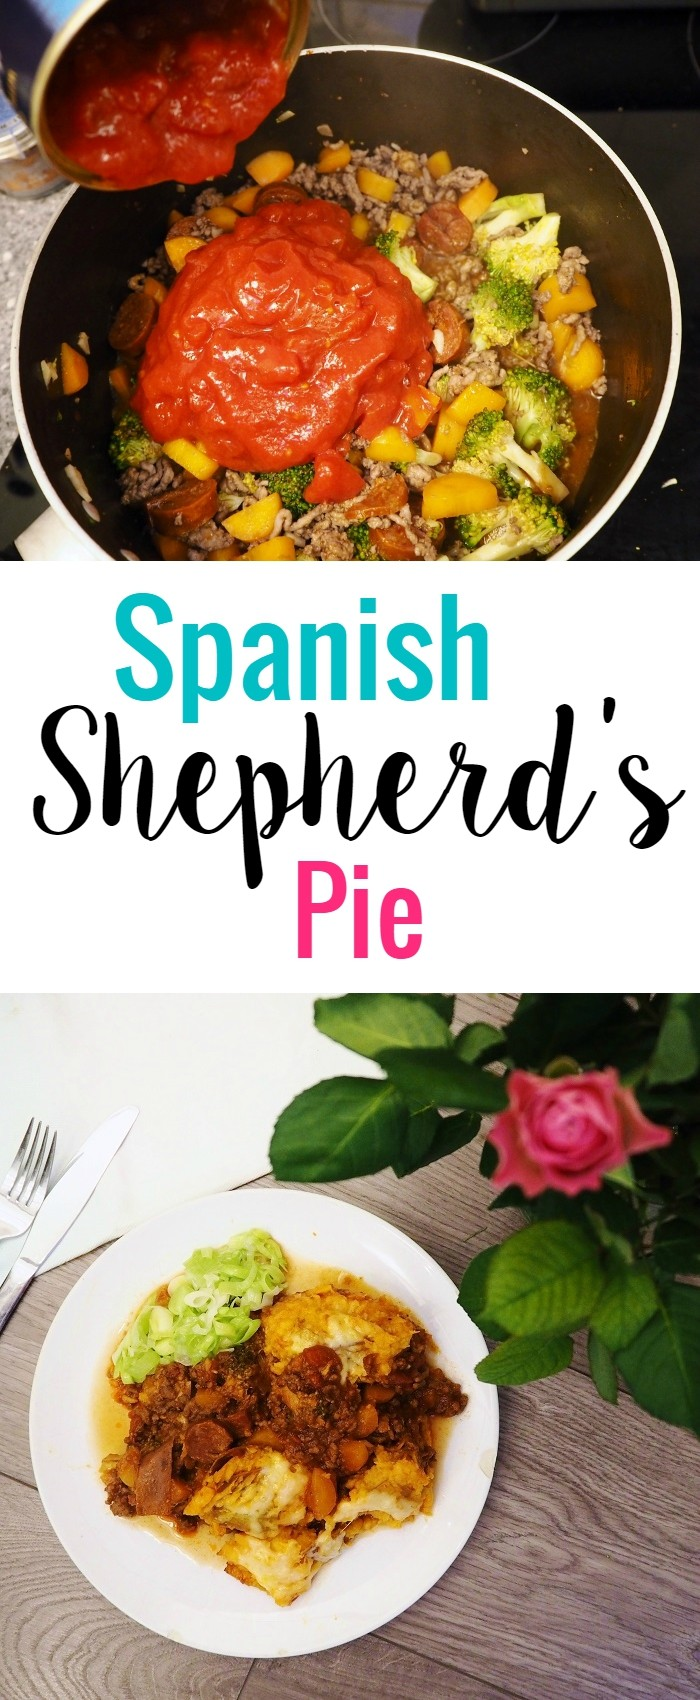 Spanish Shepherd's pie